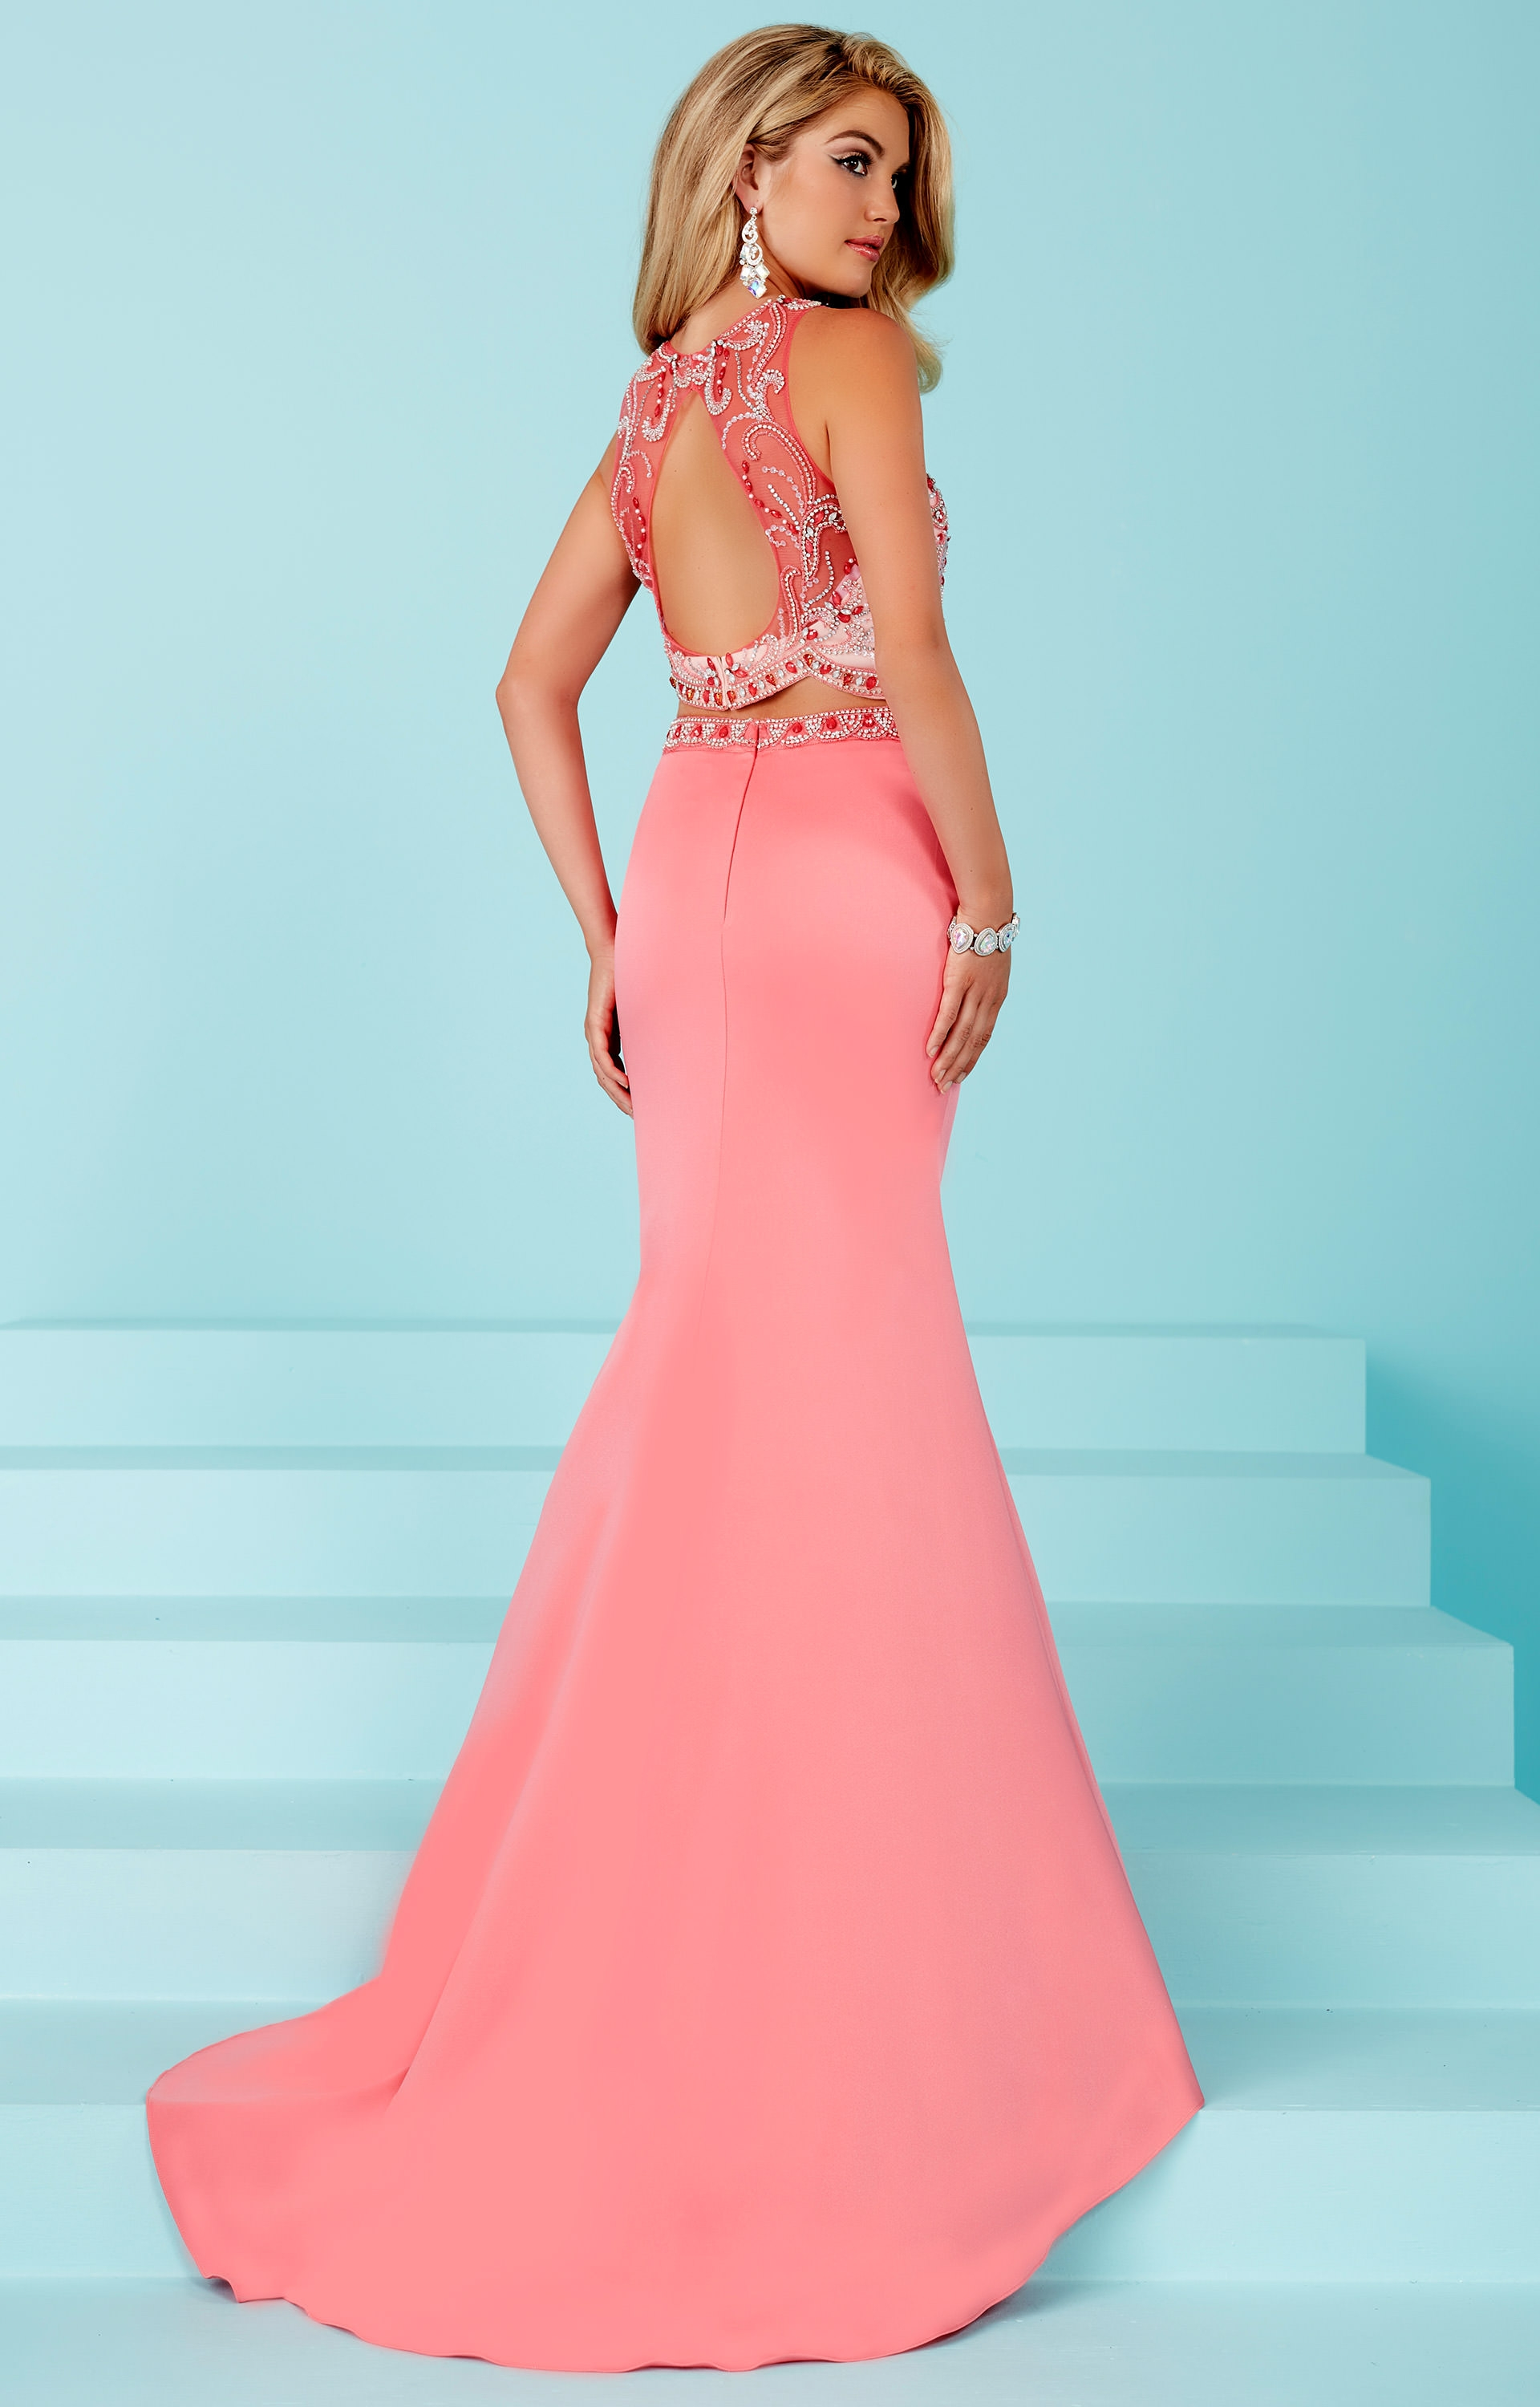 Modern Prom Dresses In Tulsa Ok Composition - Wedding Dresses ...